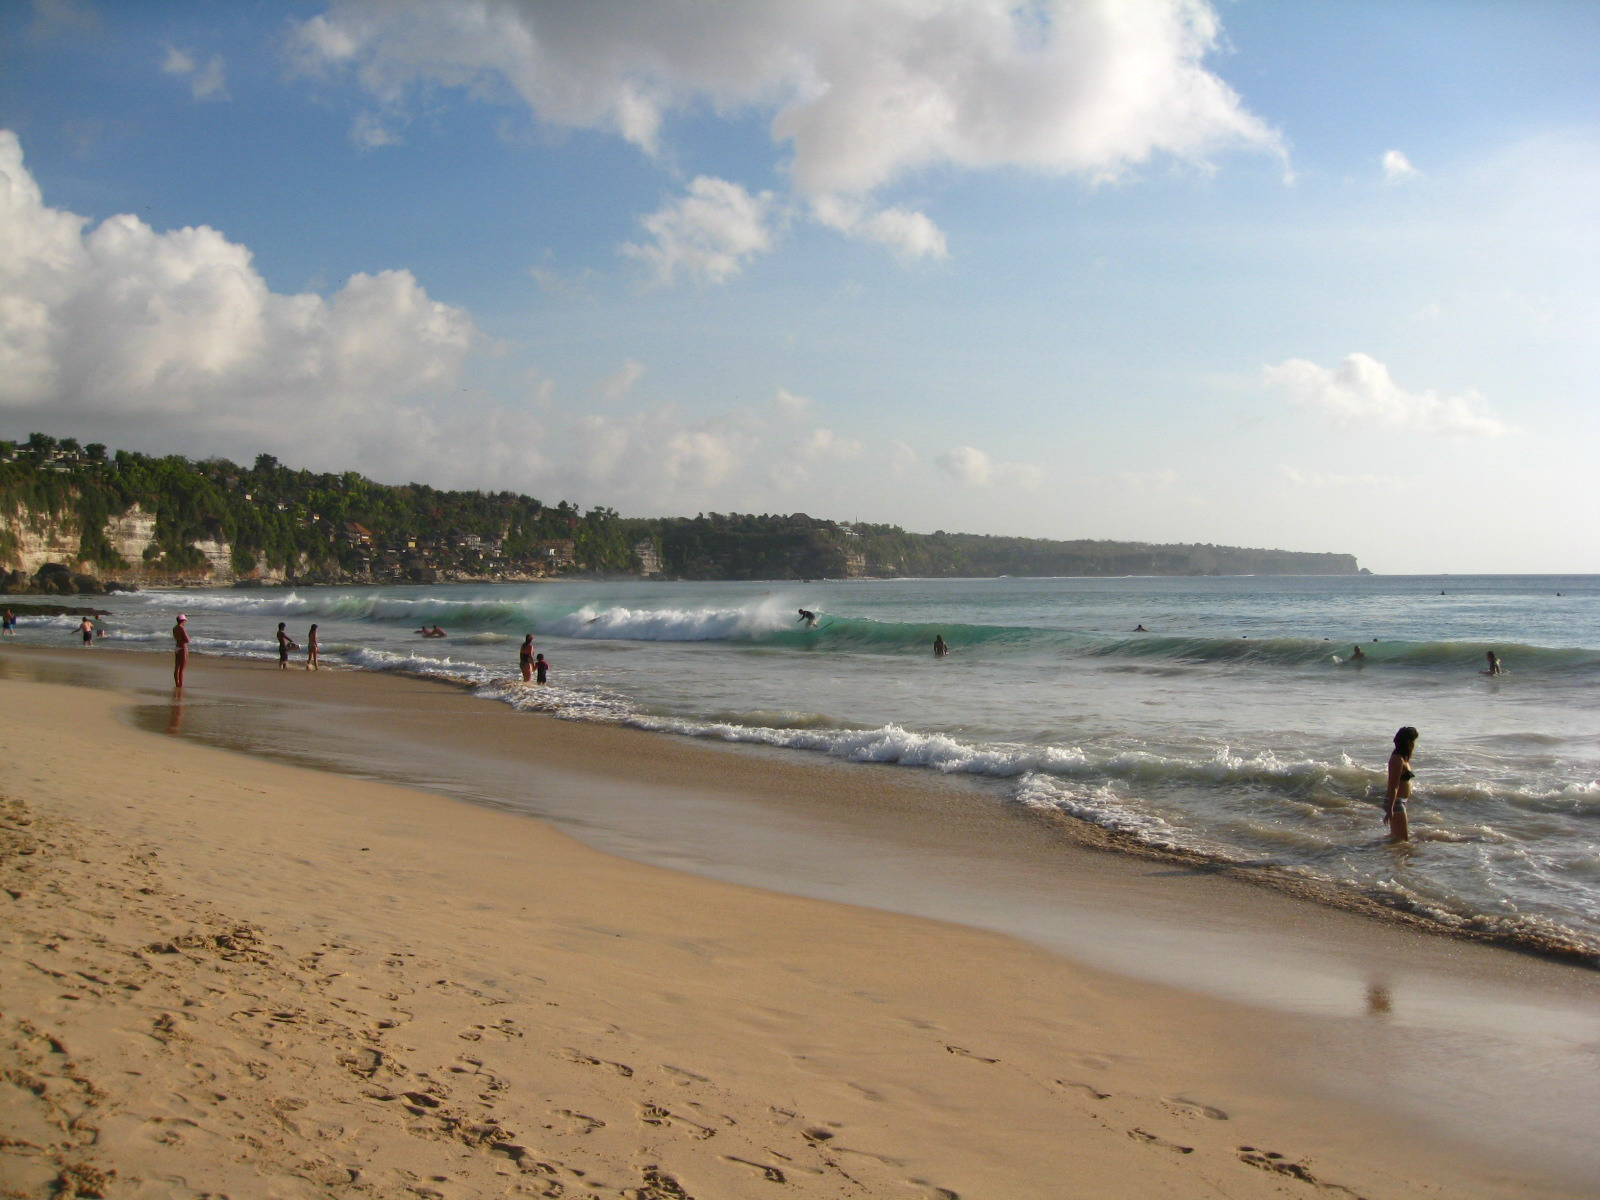 The attractive beaches of Bali are favourite destination for Indian tourists. Photo courtesy: Wikimedia